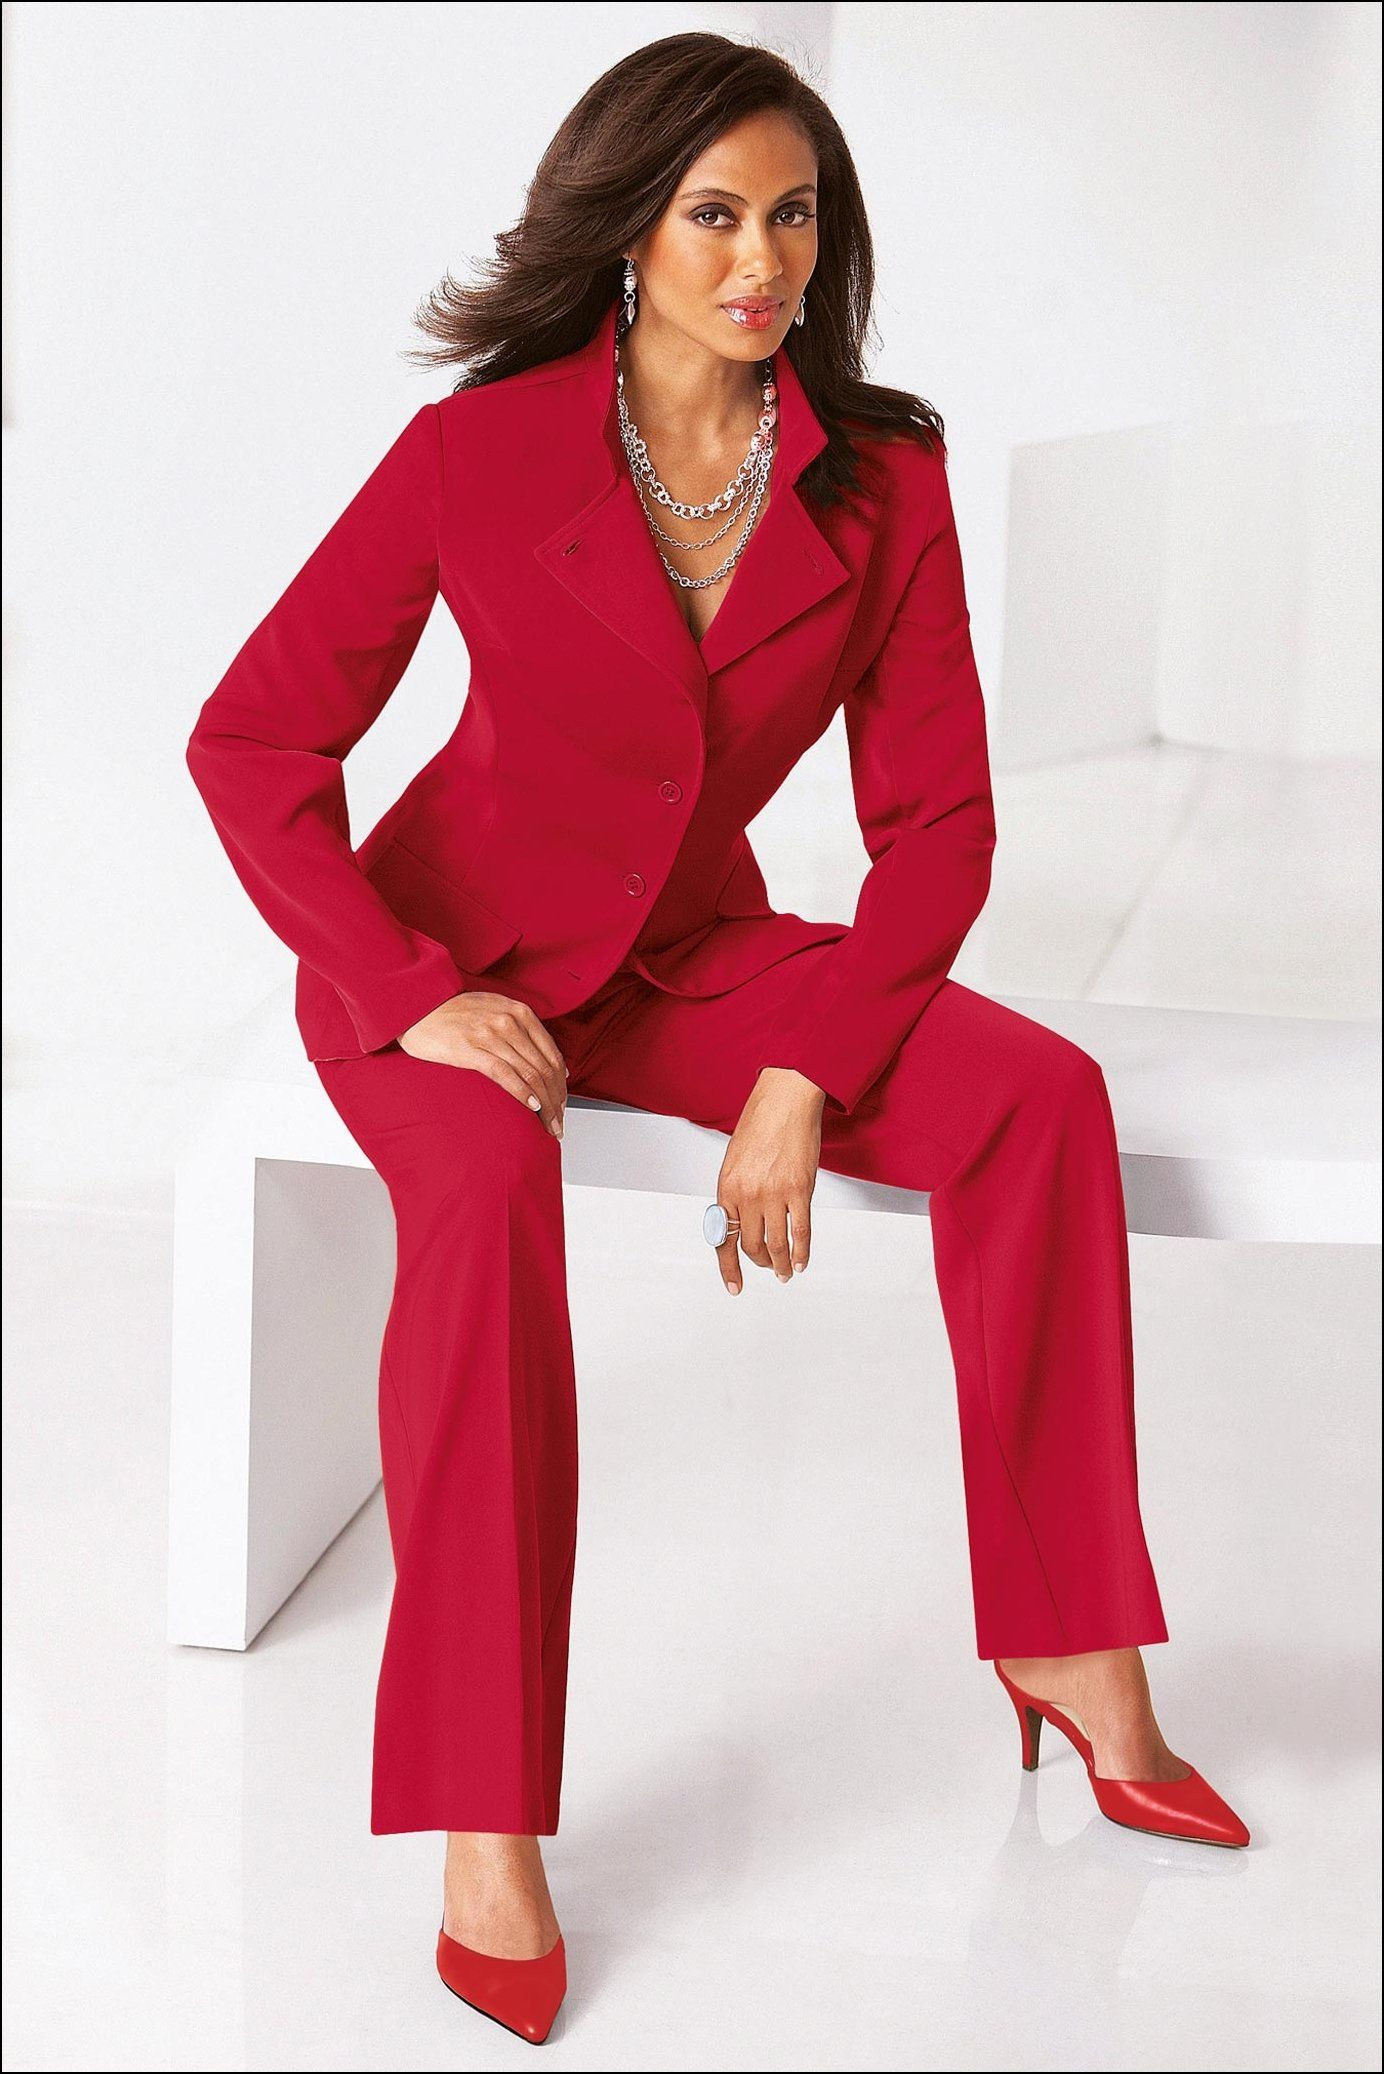 Popular Women Red Elegant Pants Suit 2015 Top Fashion Bat Sleeve Womens Suits